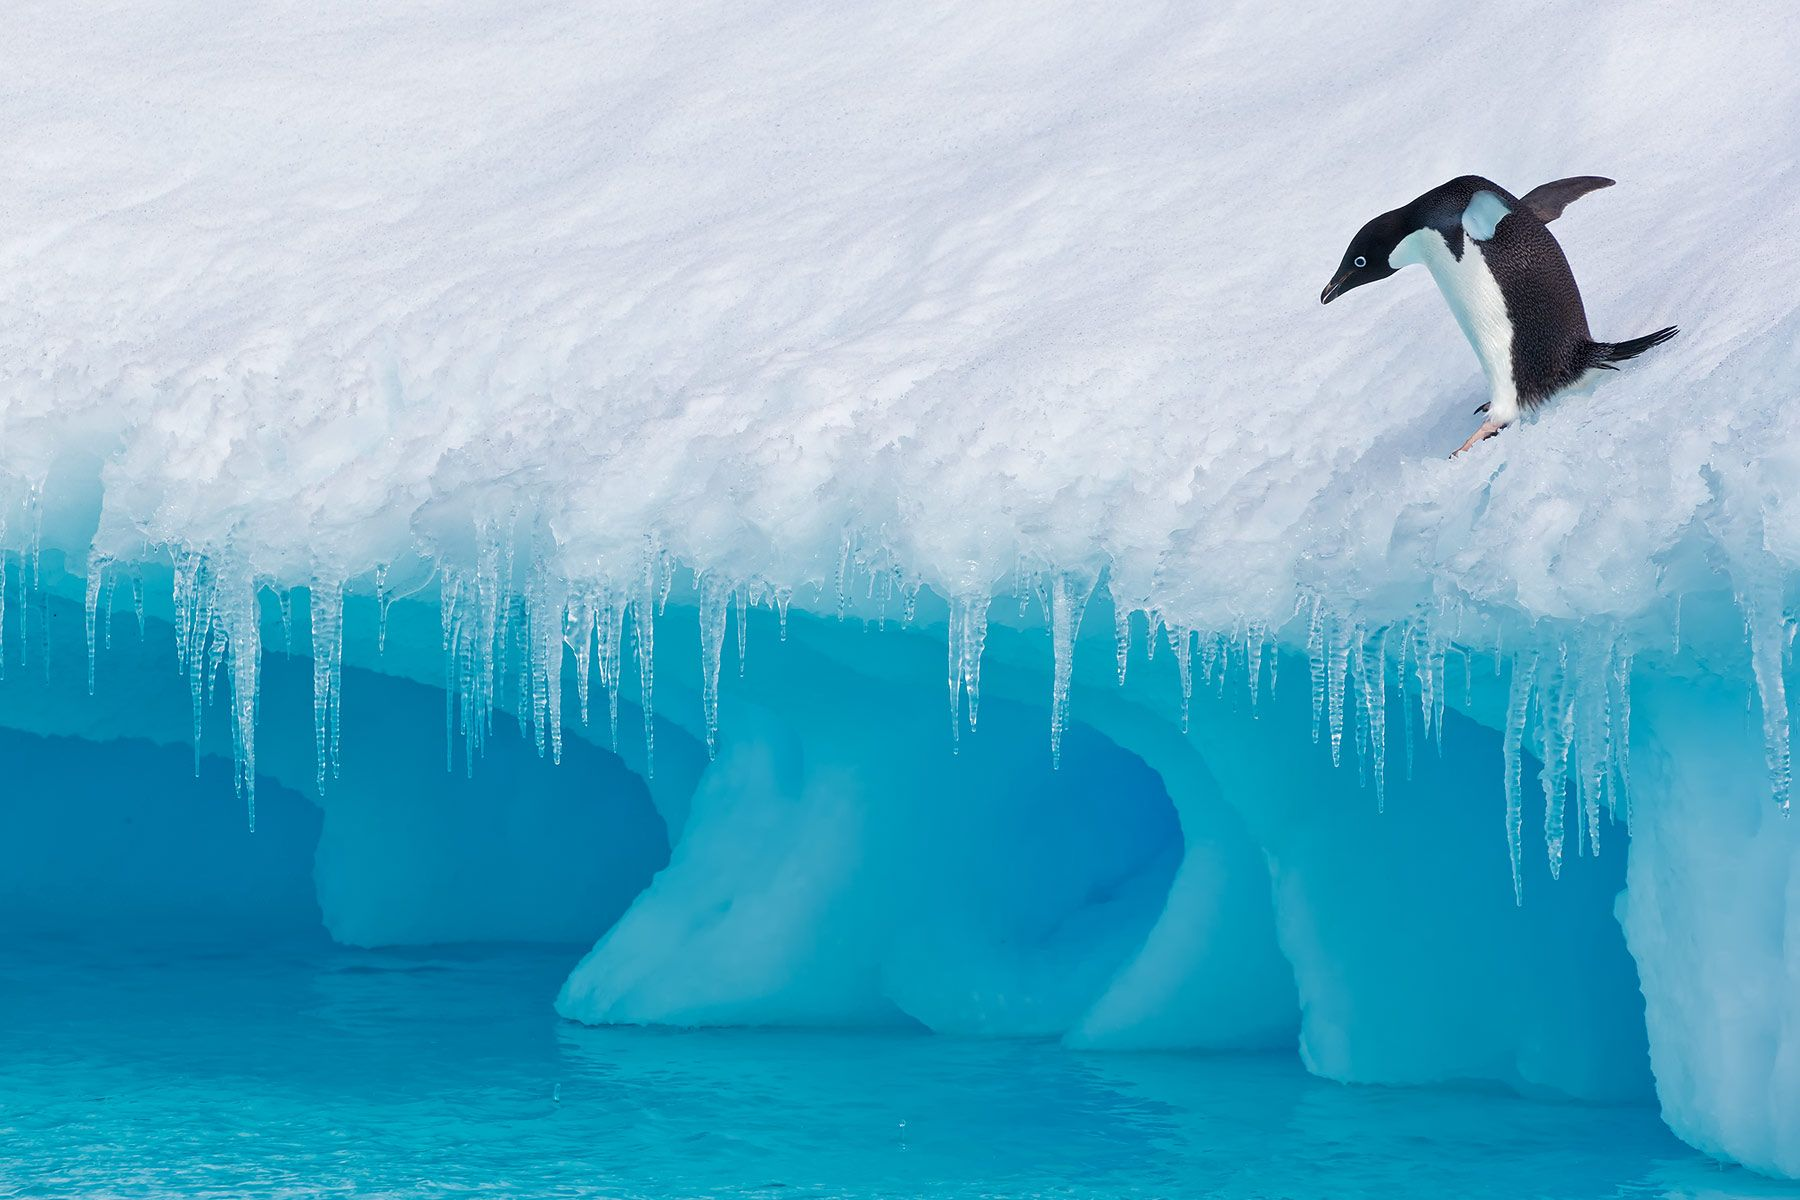 Adelie-Penguin-ready-to-jump-in-cold-water_E7T1743-Detaille-lsland,-Antarctica.jpg